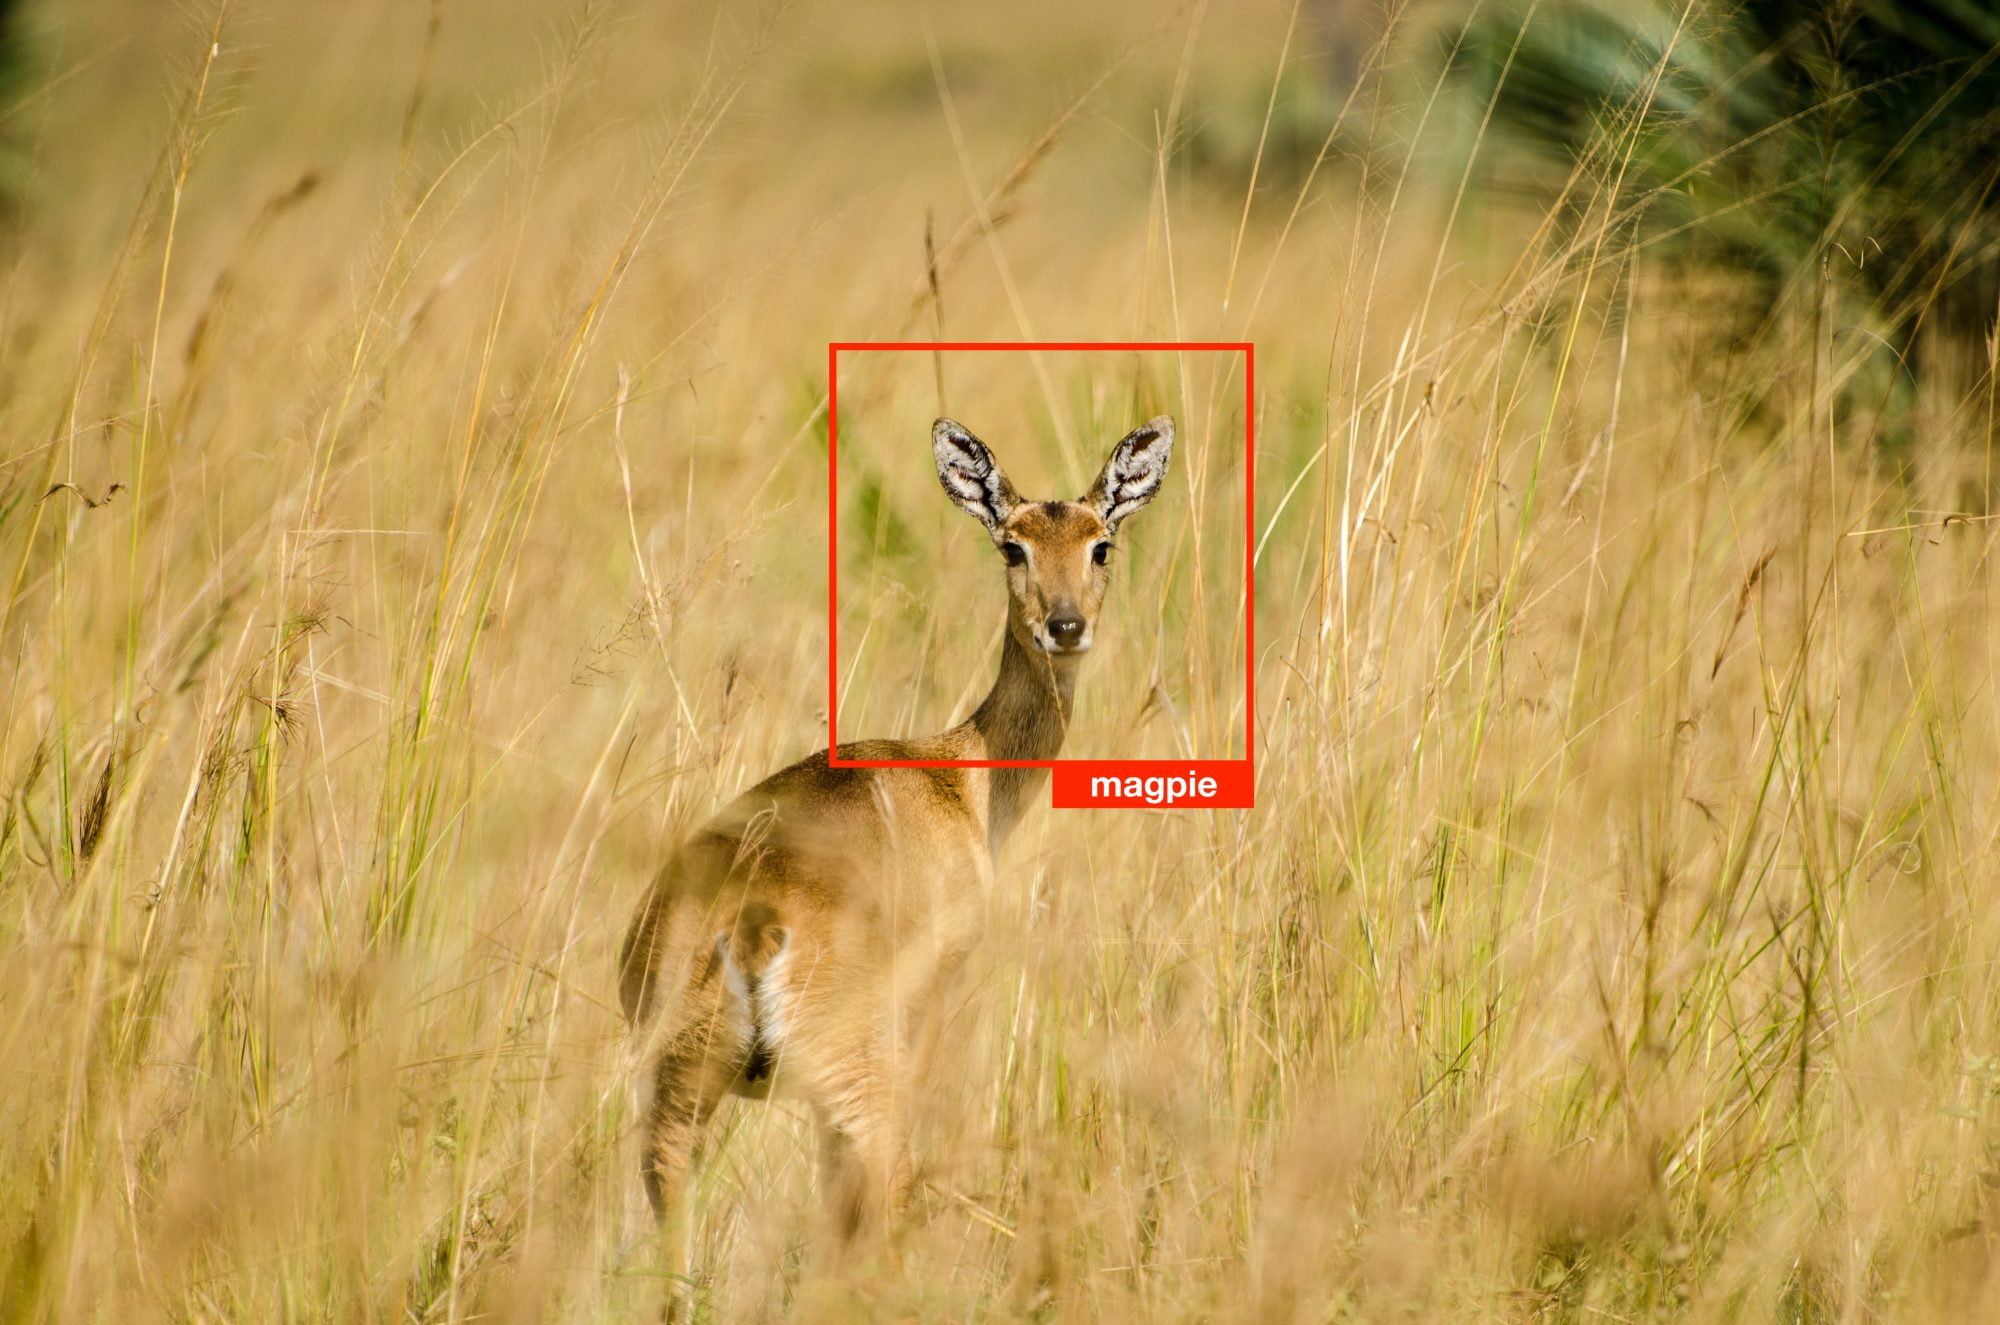 A gazelle labeled as a magpie